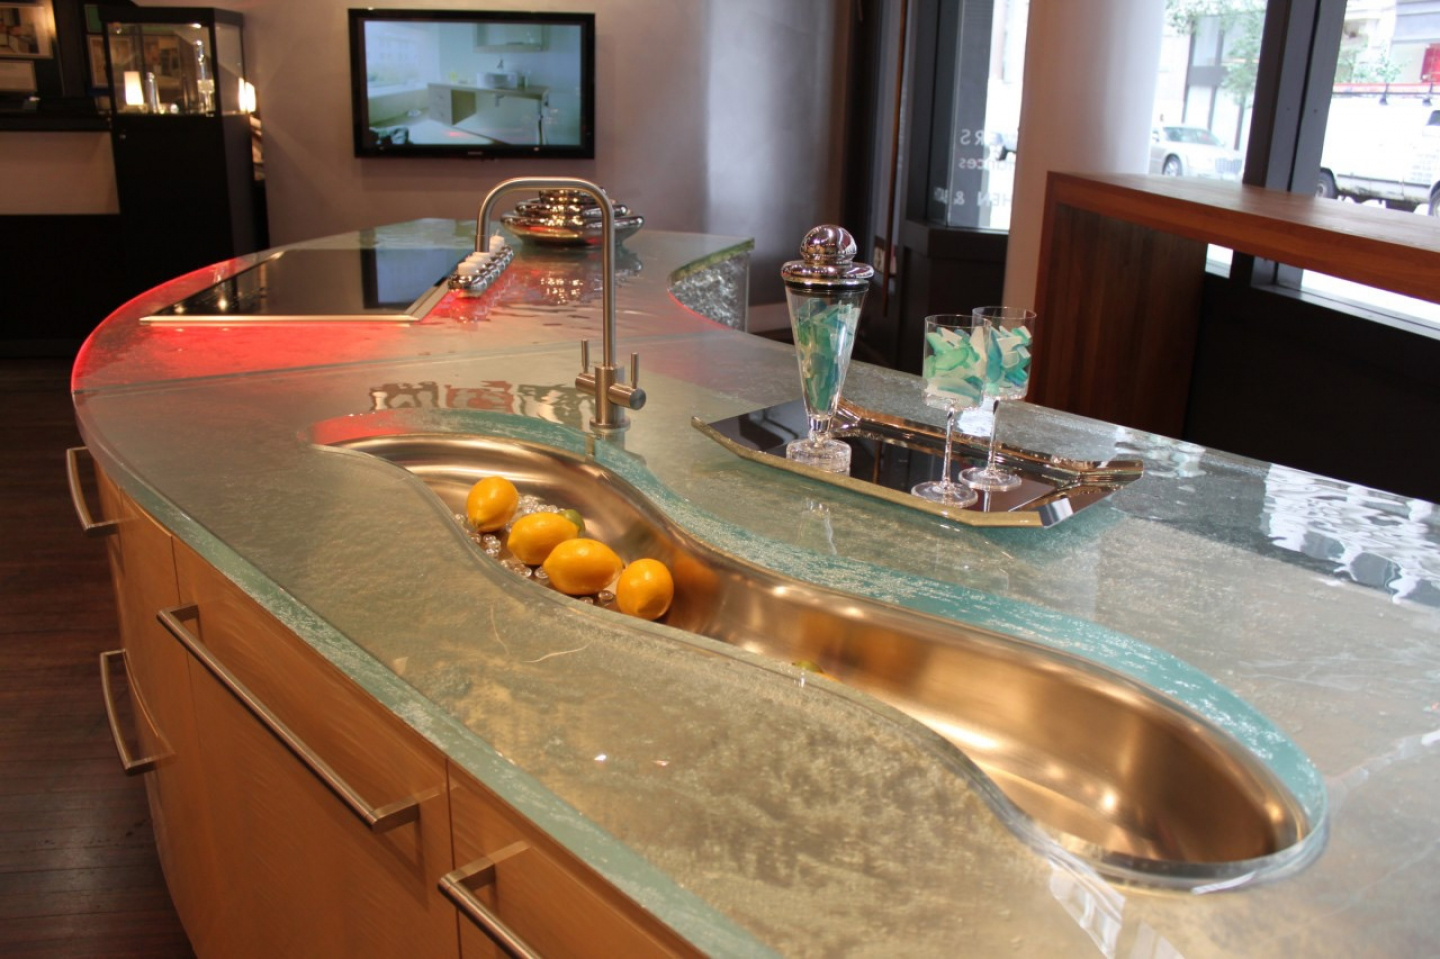 glass-and-granite-countertop-kitchen-design-remodels